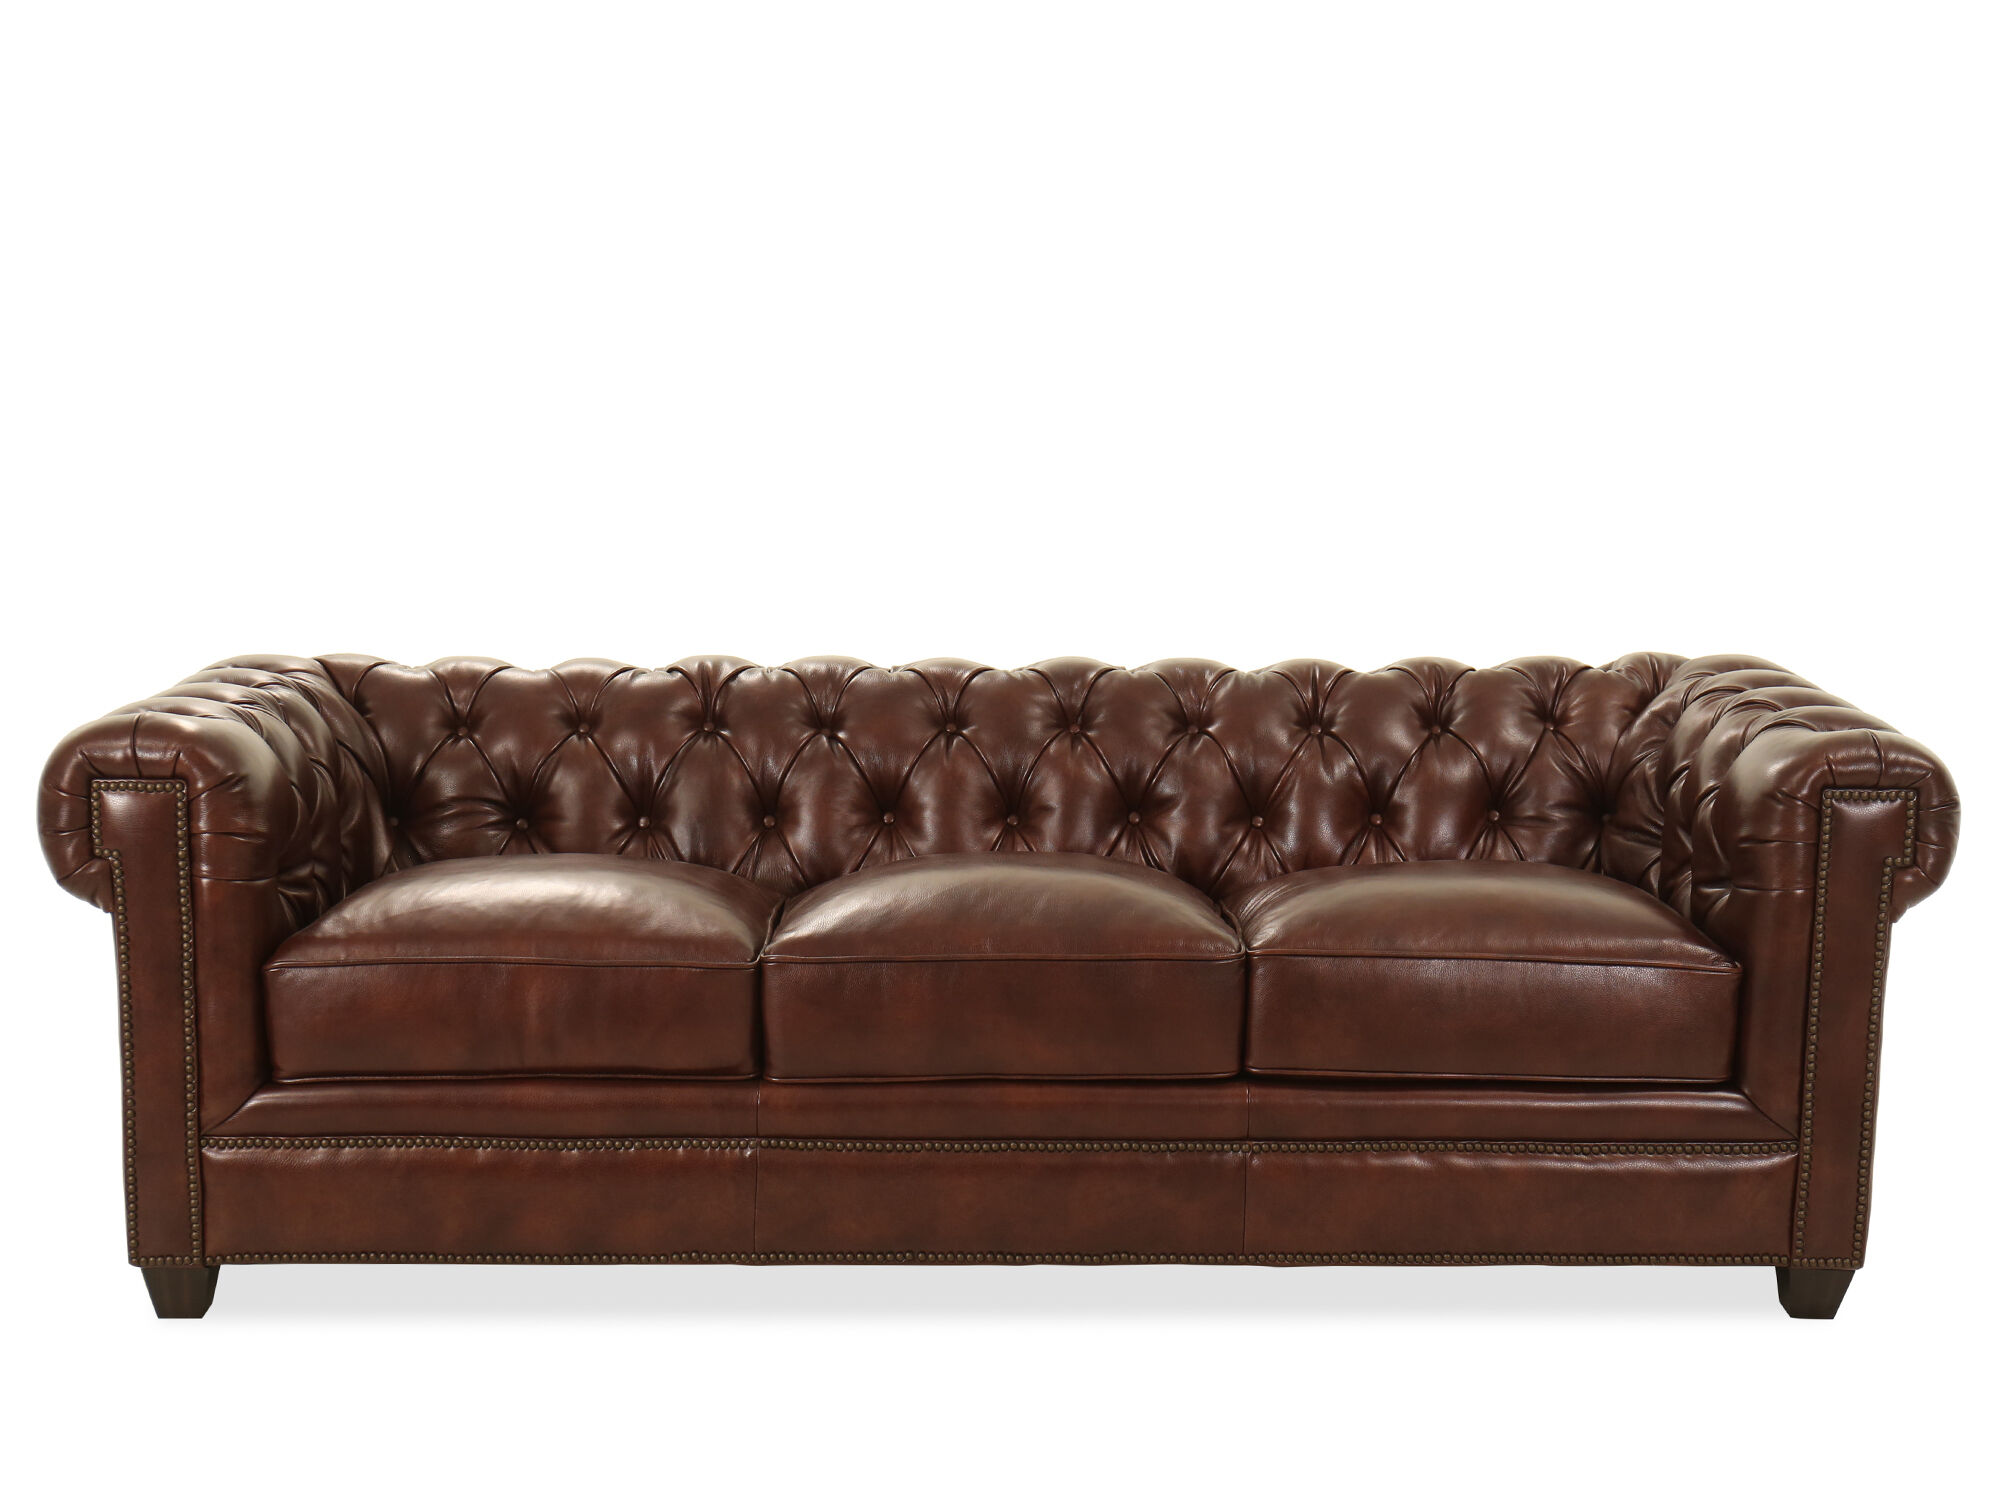 Superieur 94u0026quot; Tufted Leather Chesterfield Sofa In Milano Fudge